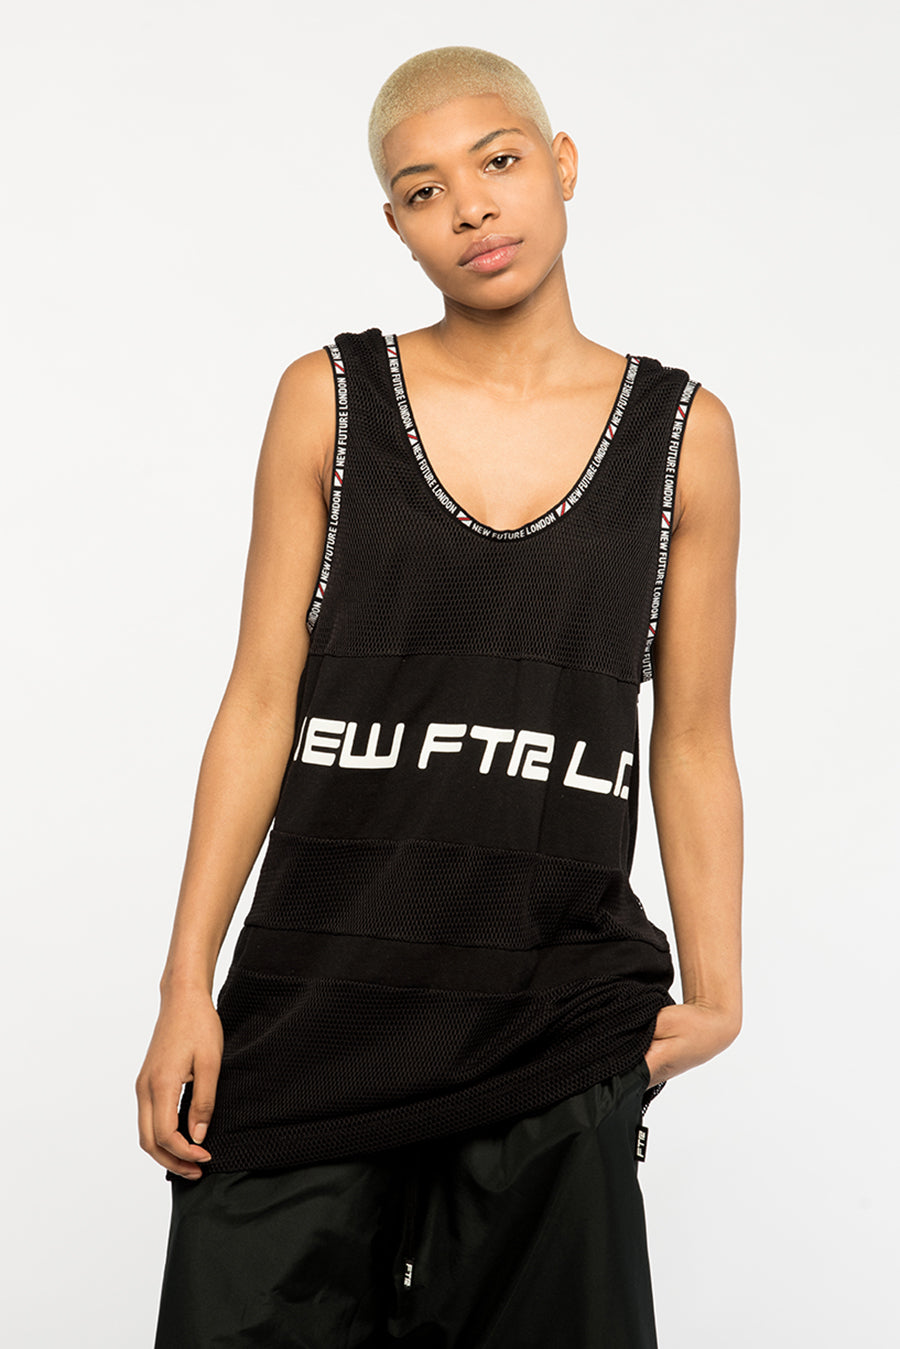 new_future_london_racer_vest_blk-1.jpg